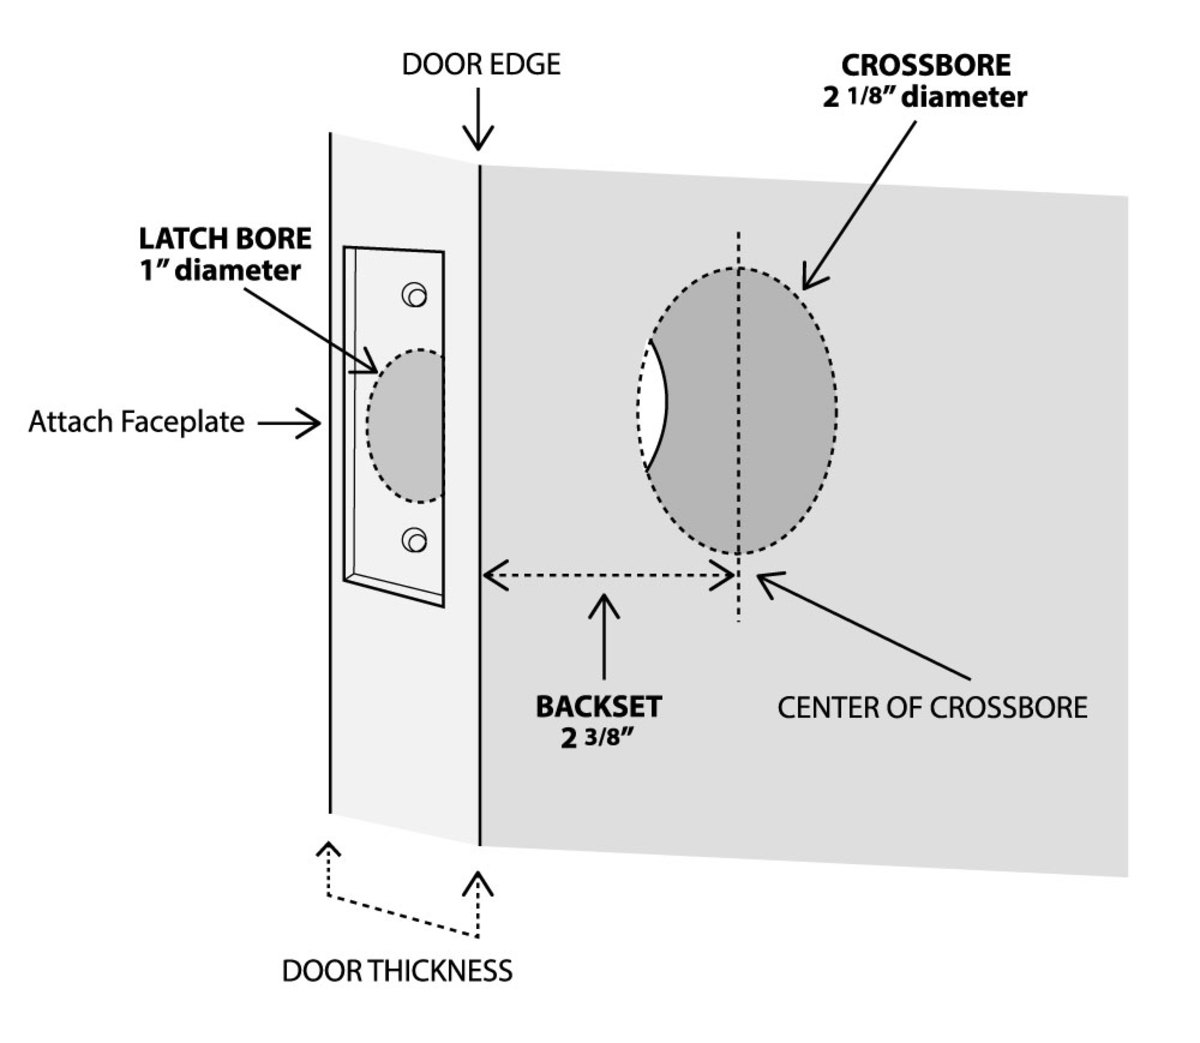 What measurements do you need to know before purchasing a new set of door hardware?  sc 1 st  Traditional Building Magazine & Measurements for New Door Hardware - Historic Properties and ...